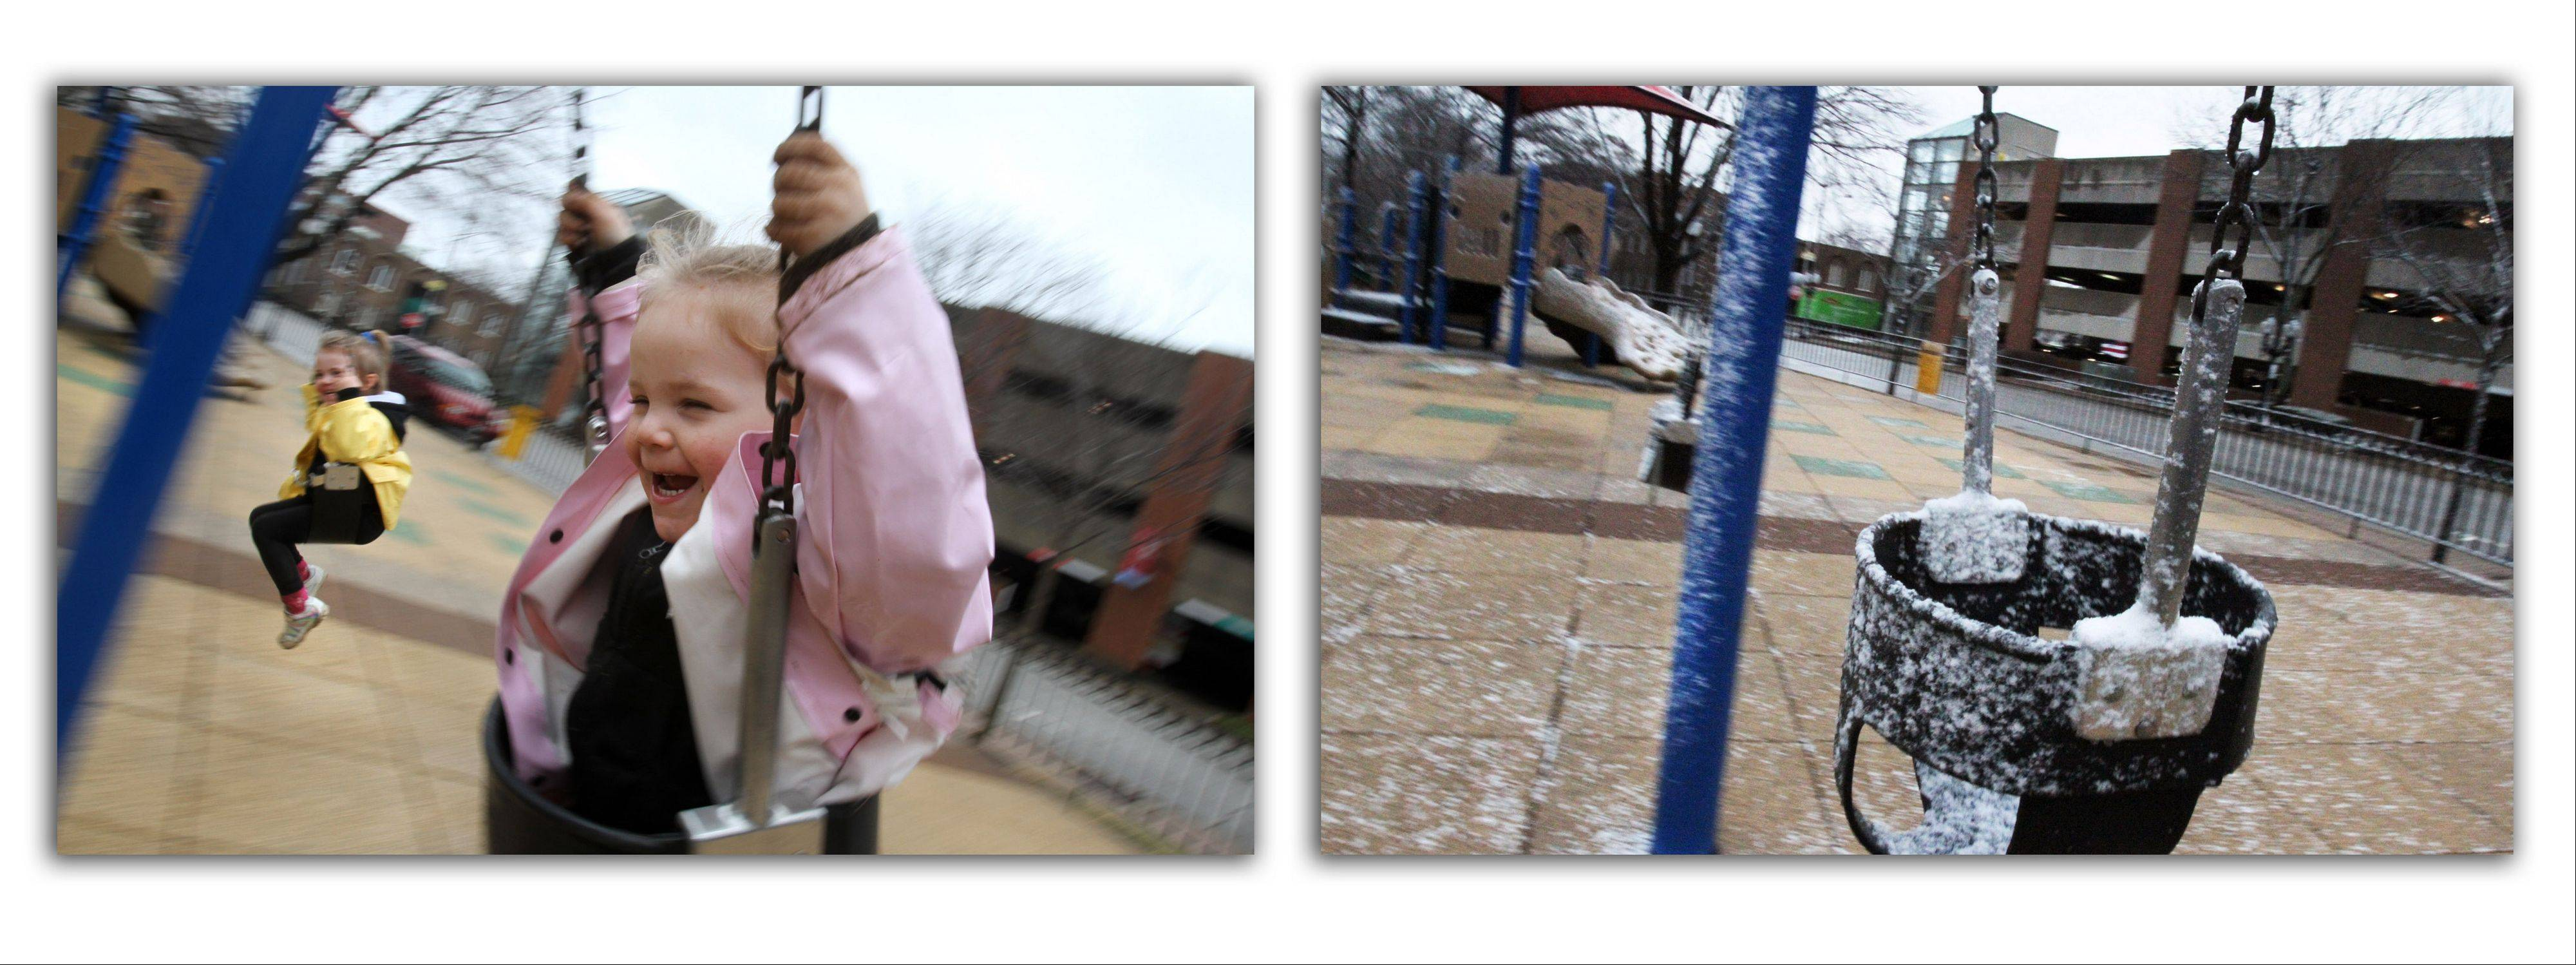 Three-year-old Madalynn Kerley with her sister Melody, 4, and mother Michelle, all of Palatine, enjoy the swing and sixty-degree temperatures at North School Park in Arlington Heights Tuesday, then on Wednesday, snow and freezing rain took their place.